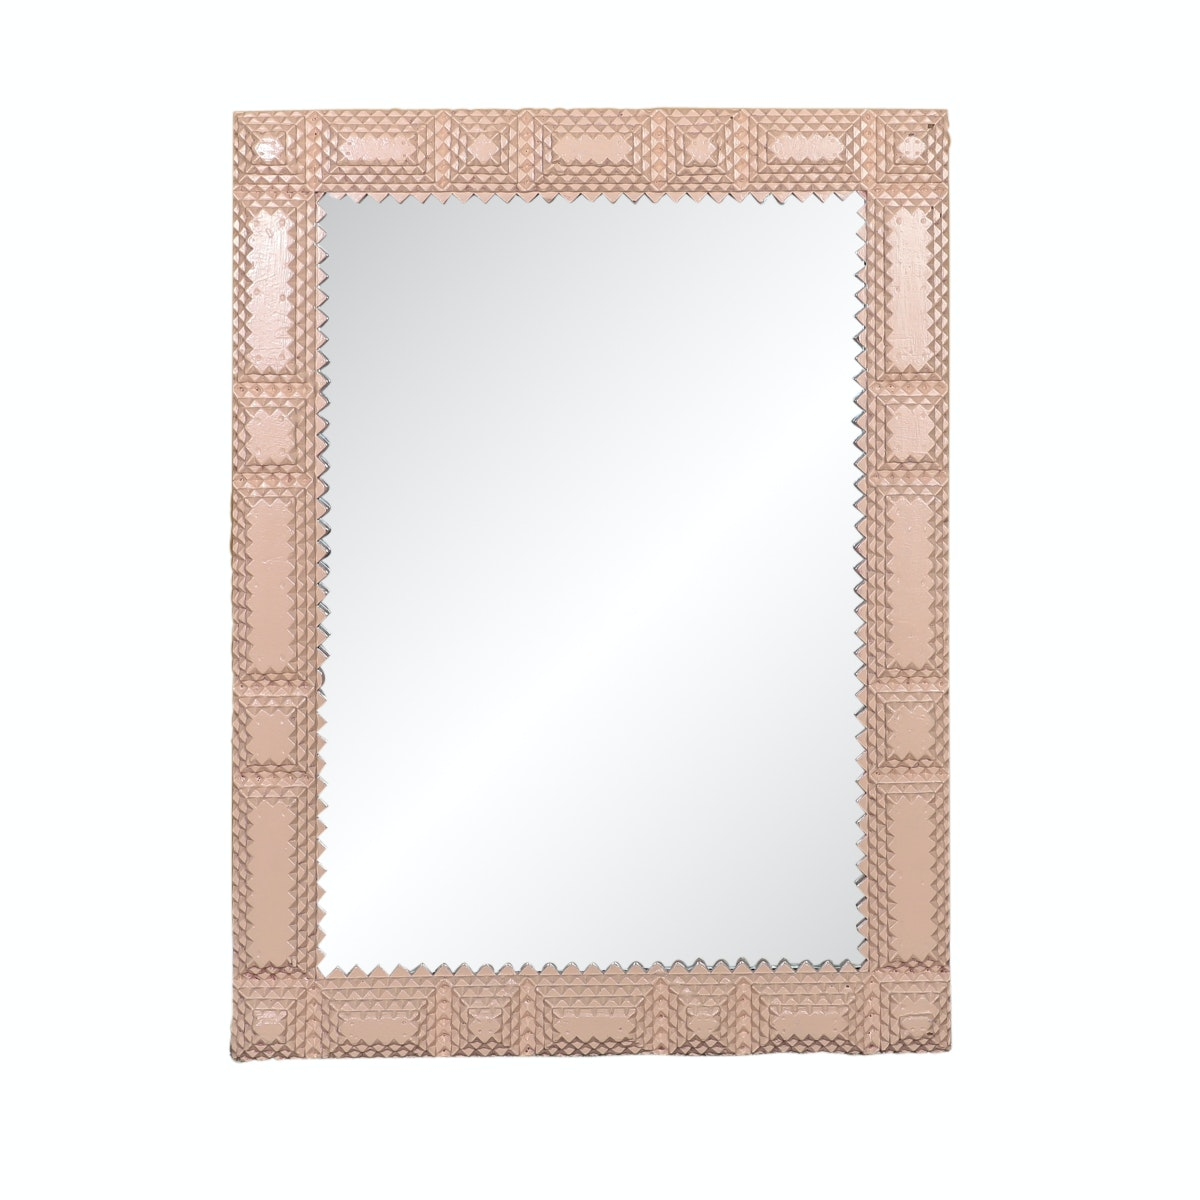 Antique Wood Framed Wall Mirror with Pink Finish